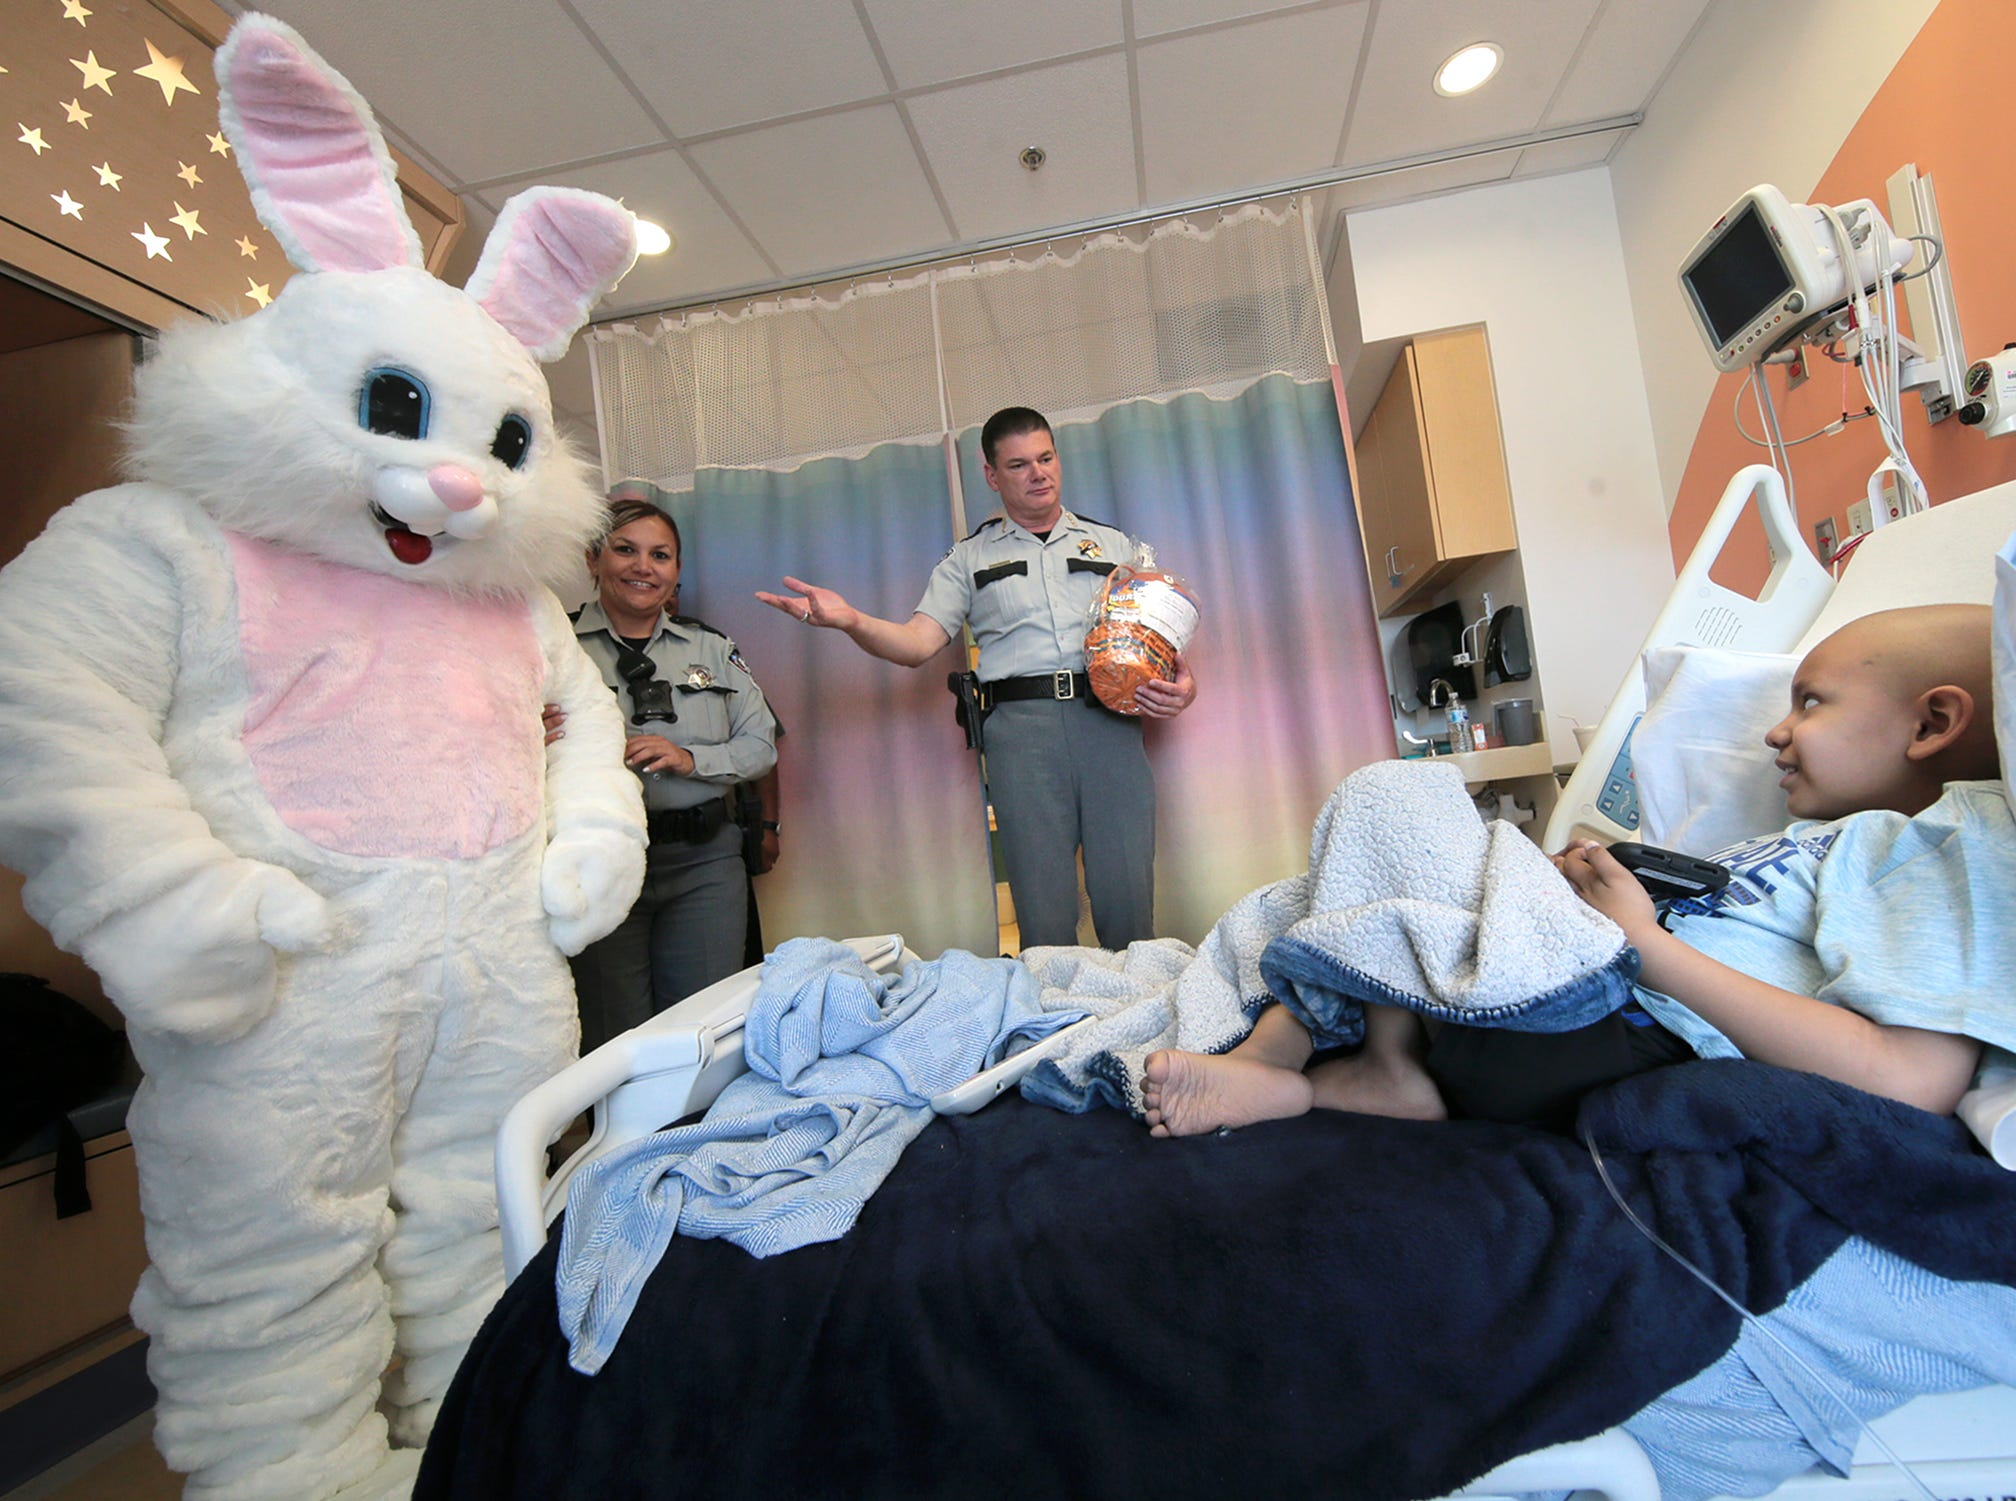 El Paso County Sheriff Richard Wiles and the Easter Bunny visit five-year-old Esteban Lerma in his roon at El Paso Children's Hospital Thursday delivering Easter baskets and smiles to kids who will be in the hospital over the Easter weekend.